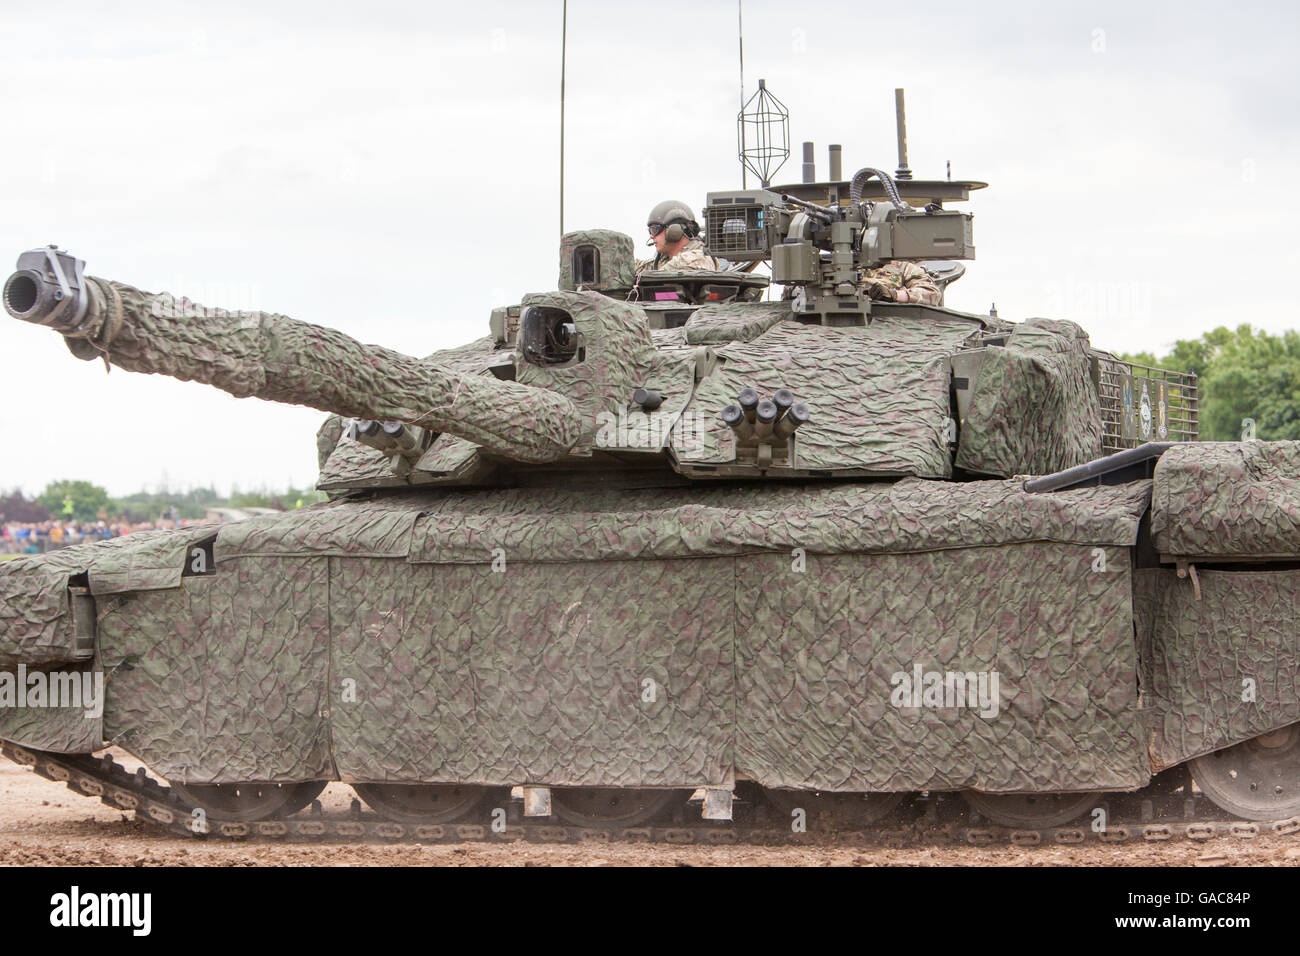 57bee81dd473 Challenger 2 main battle tank (Megatron) with heat and radar thermal solar  reducing blanket